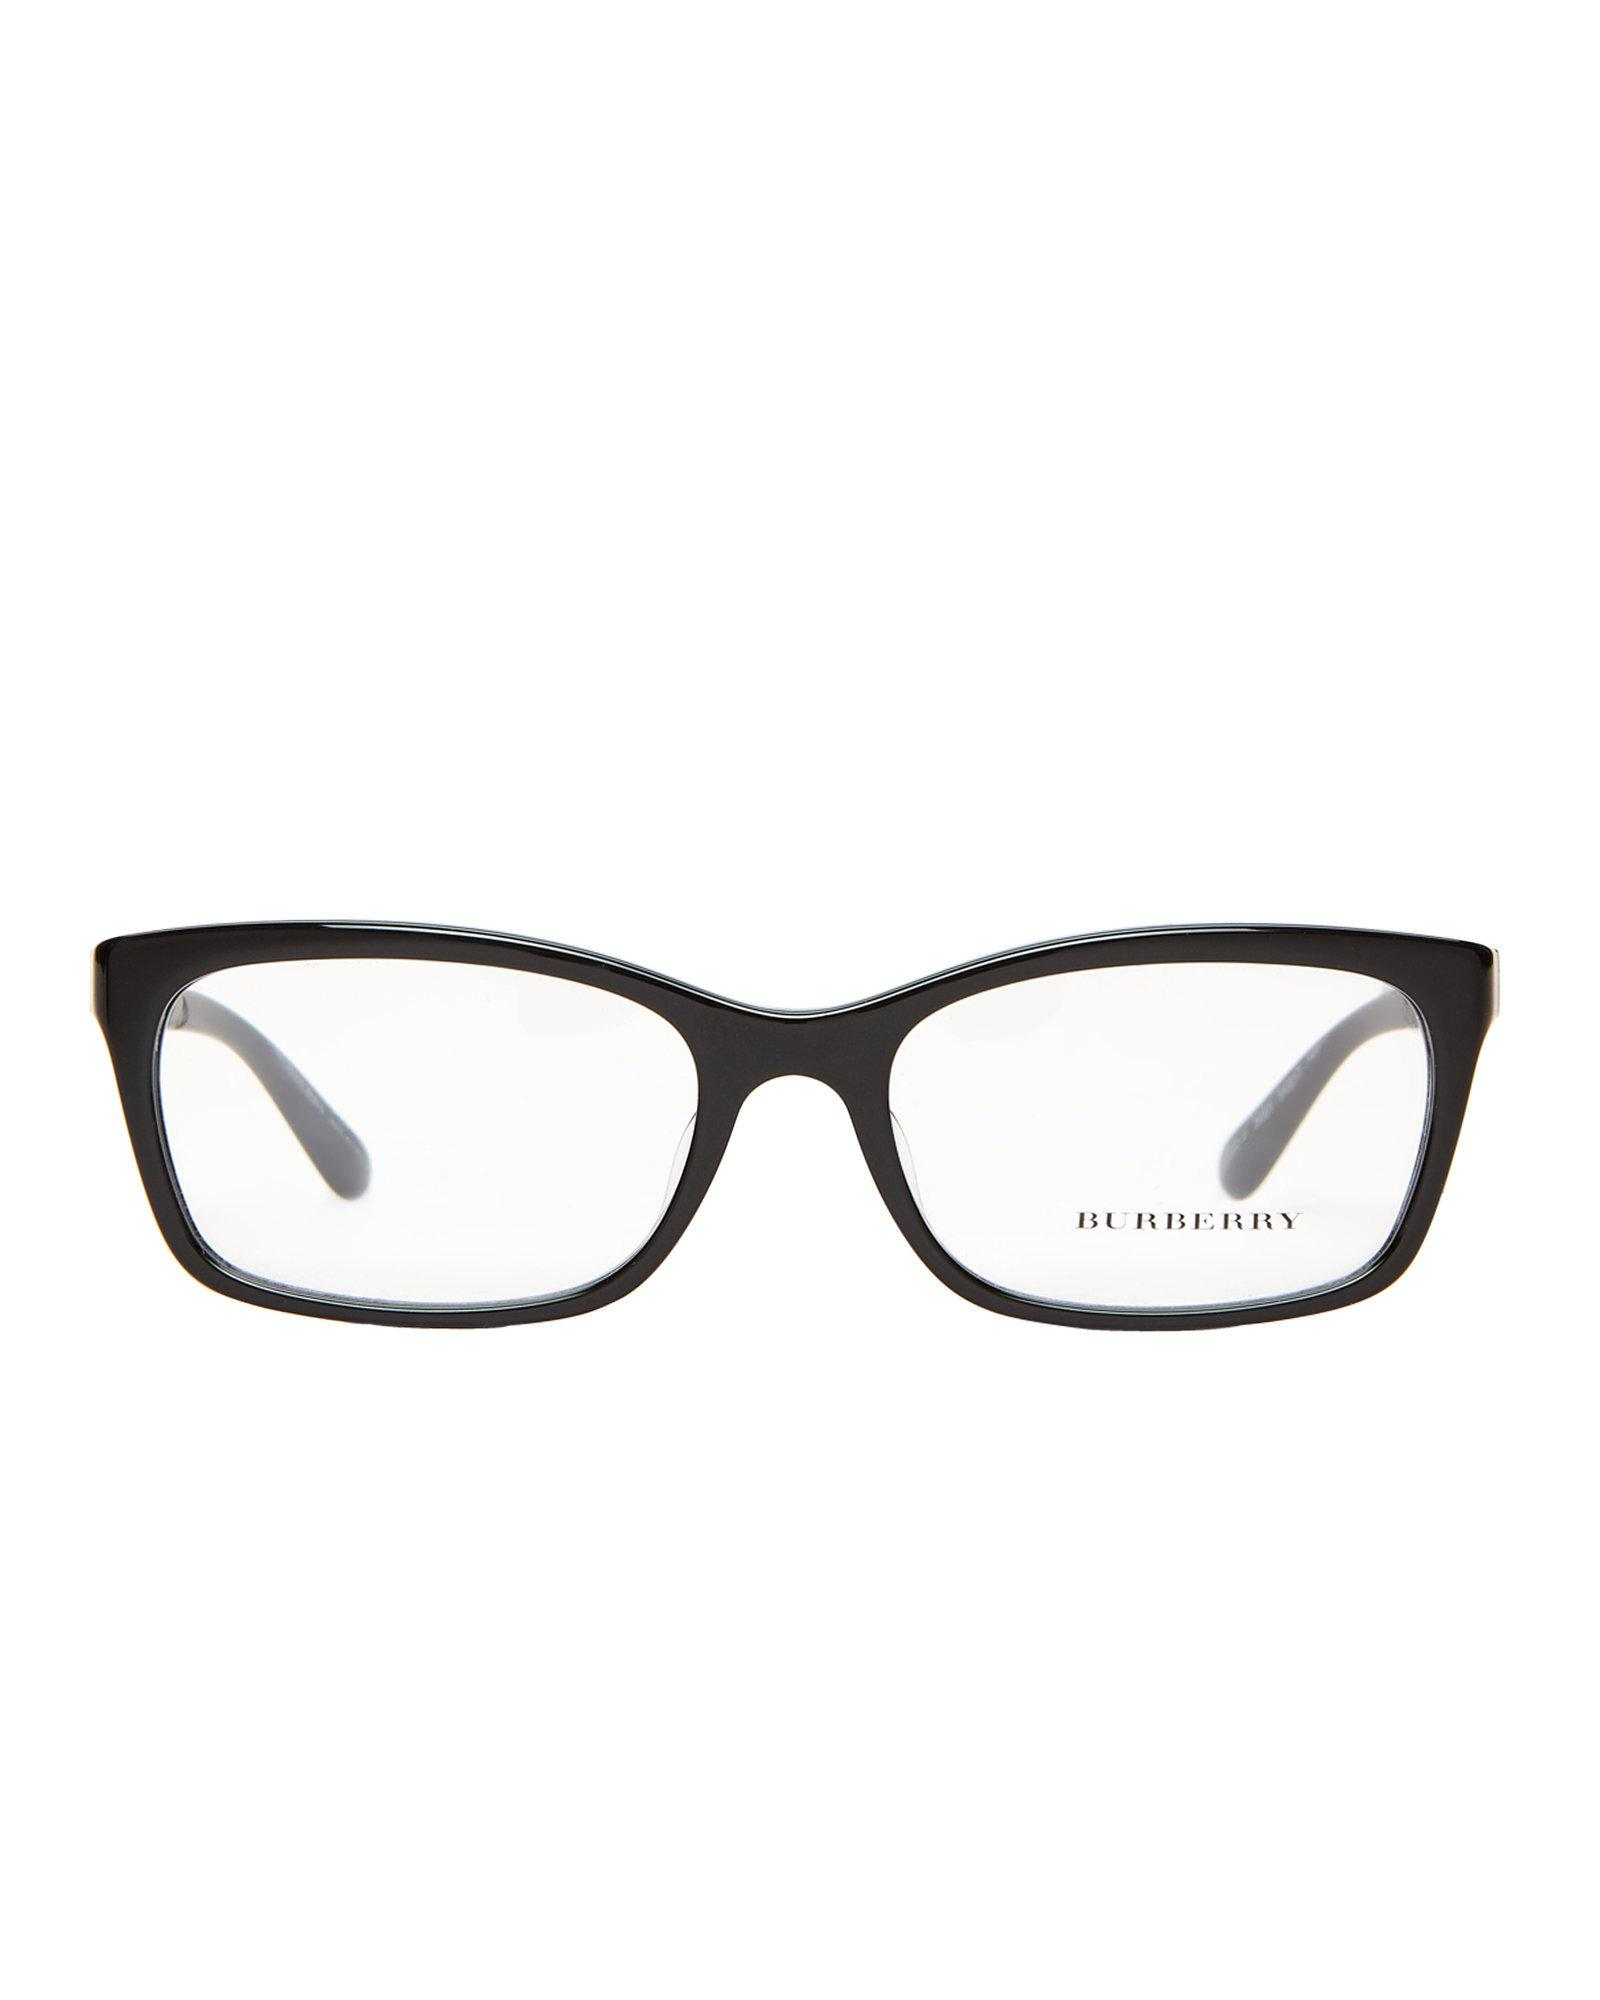 08606f381c Lyst - Burberry B2220-f Black Rectangle Optical Frames in Black for Men